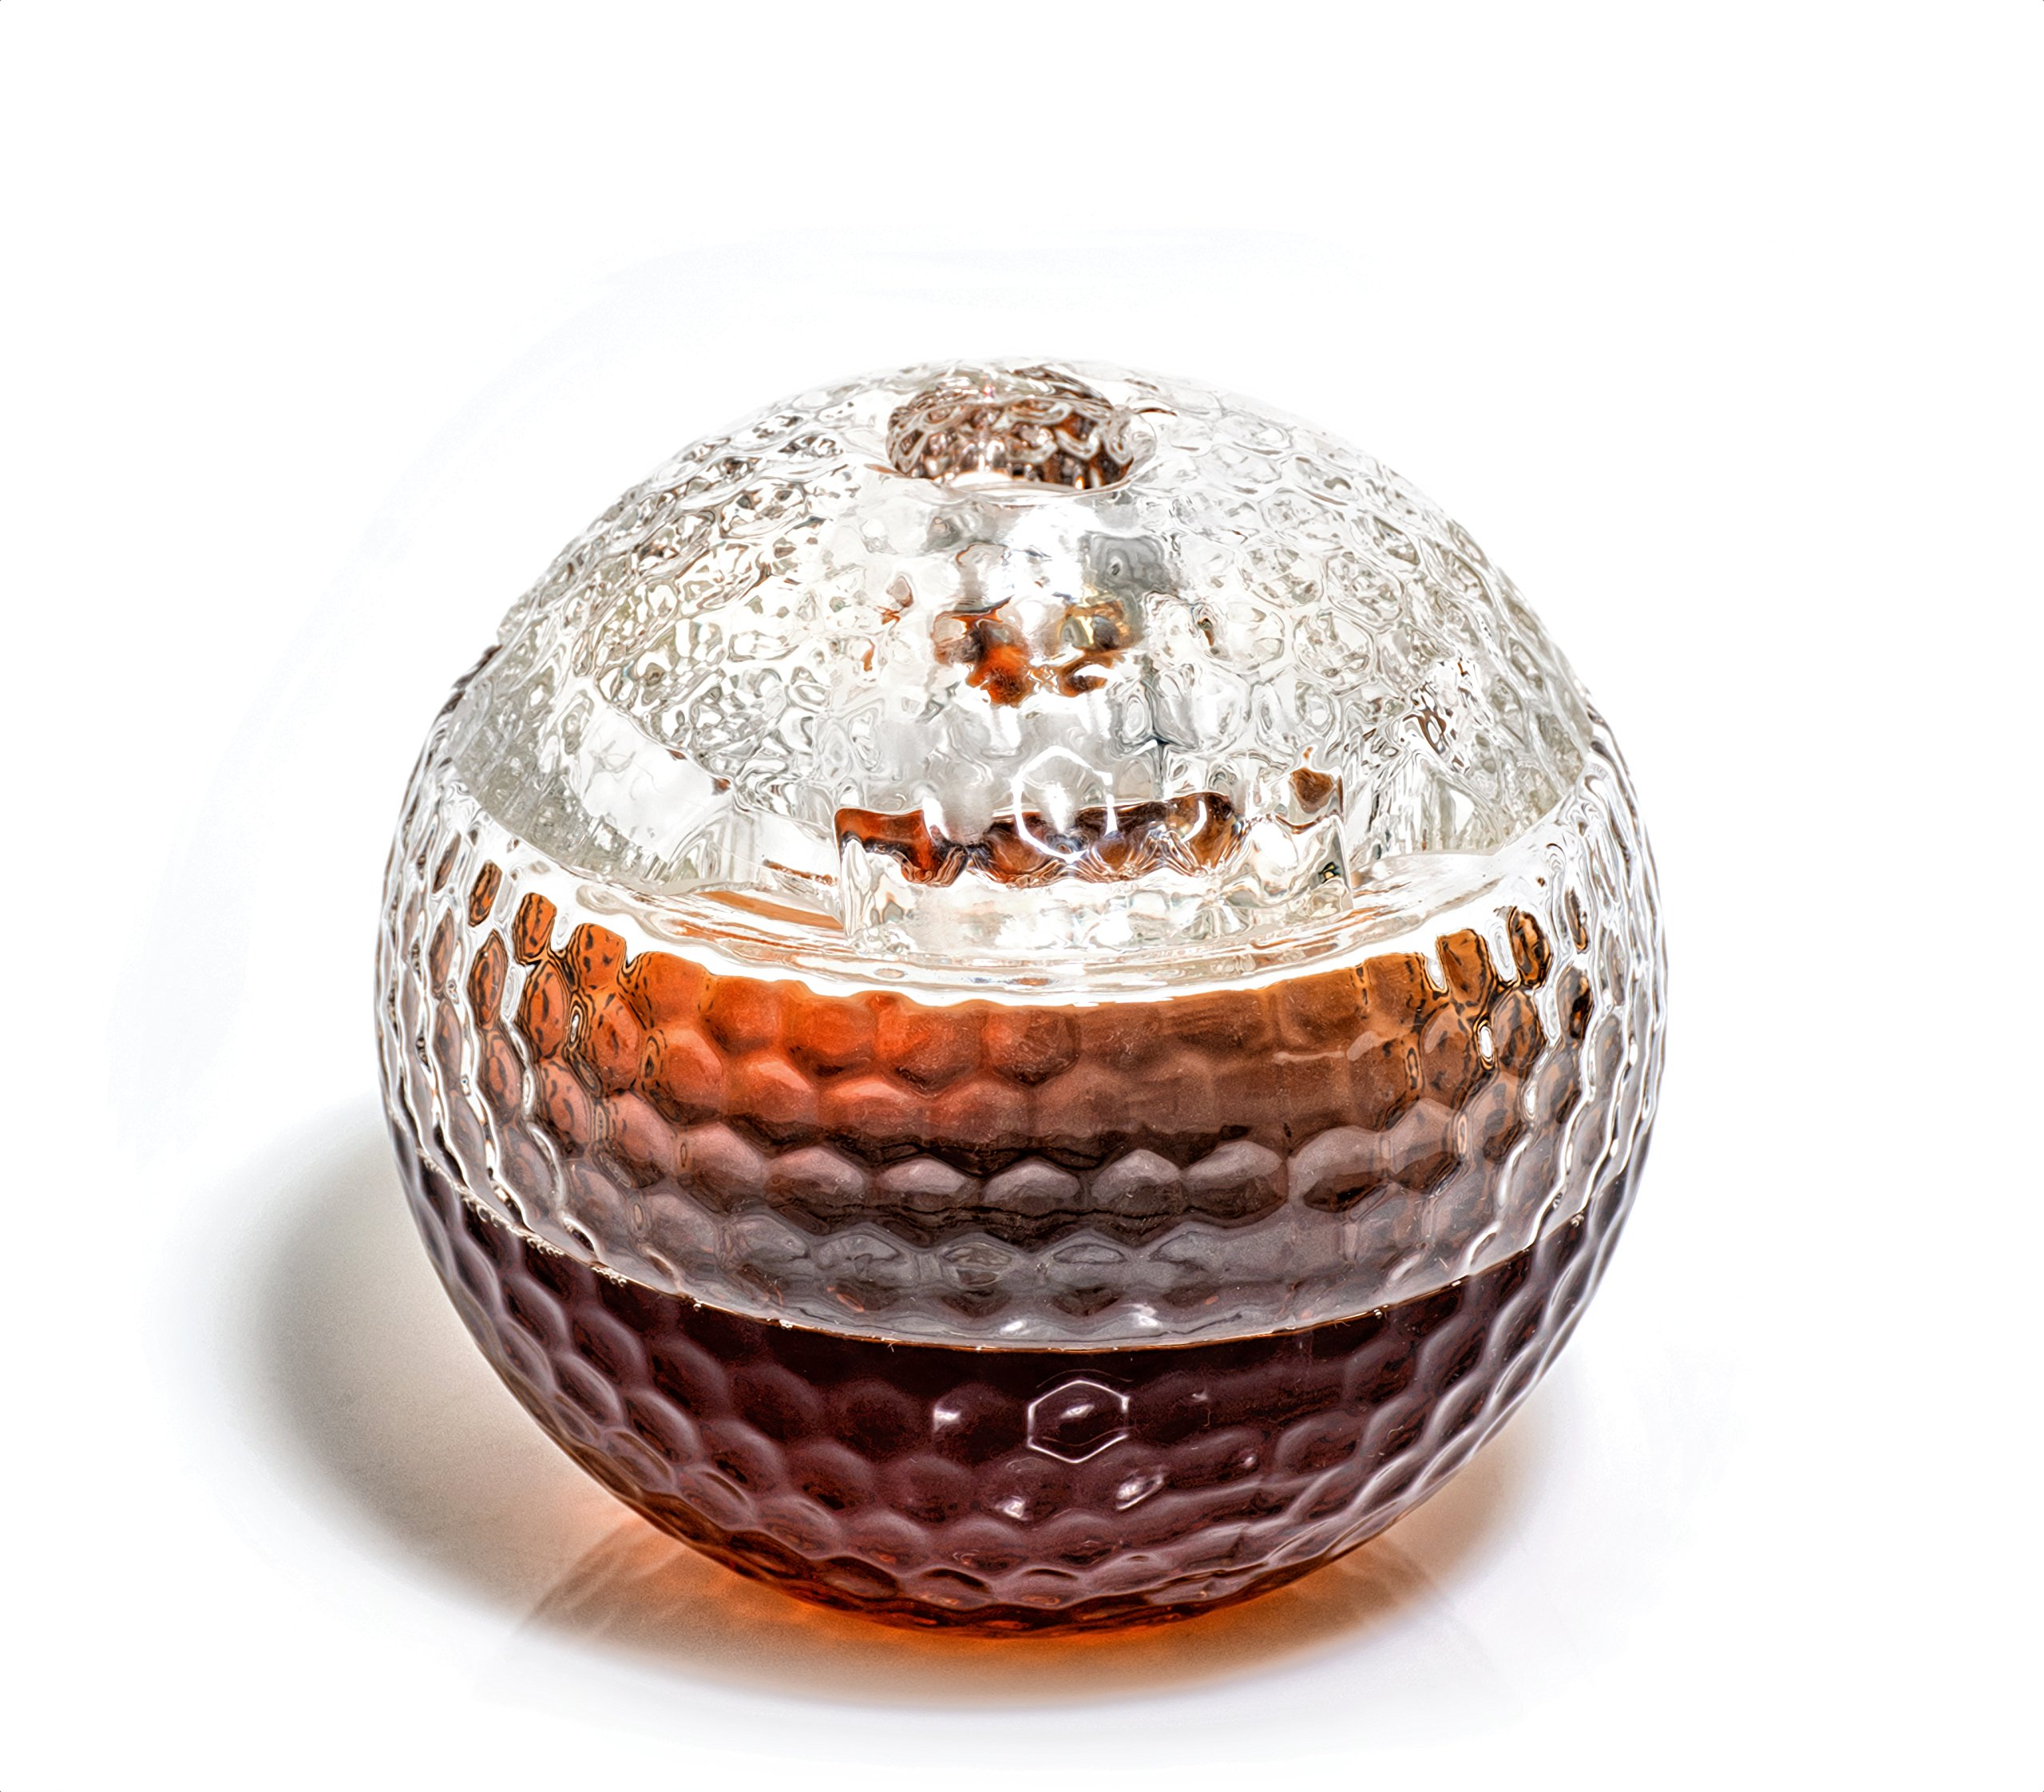 Golf Ball Liquor Decanter - Golf Gifts for Men & Women Who Love Scotch, Whiskey, Bourbon, etc. - Home Decor Golf Accessories, Gifts for Golfers (1000ml Whiskey Decanter) Golfing Gift for Men/Women